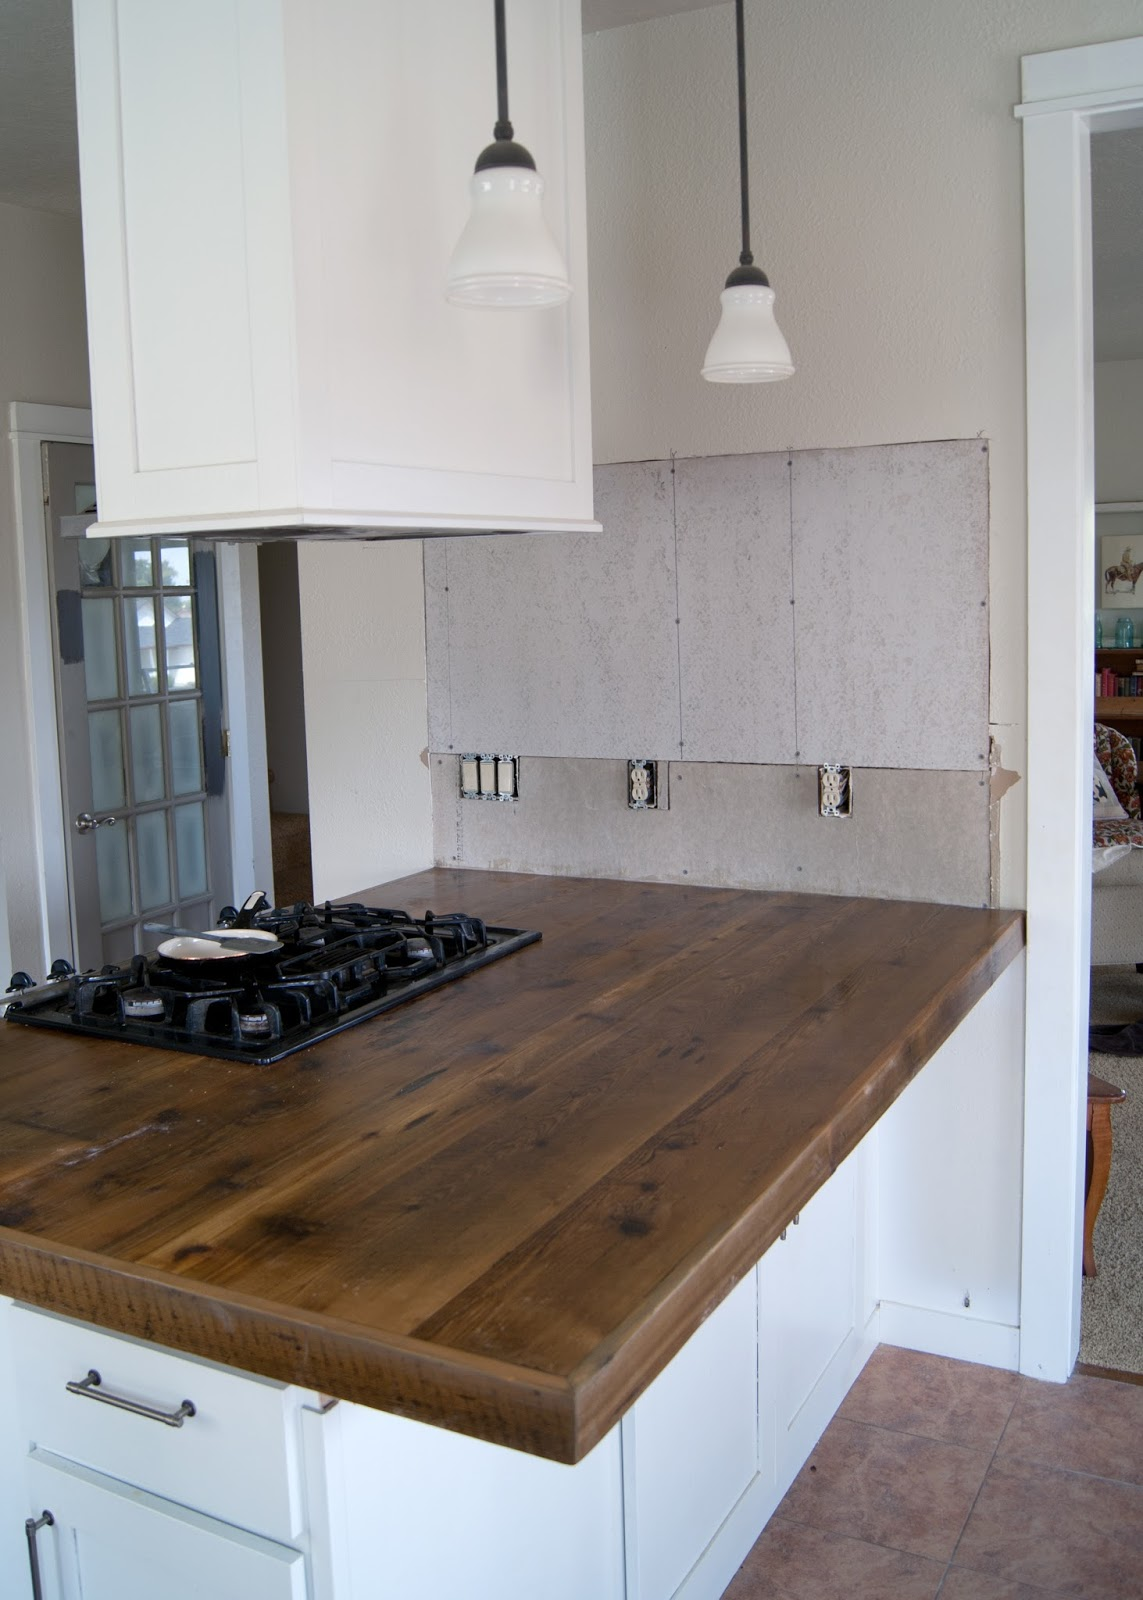 Uncategorized Diy Wood Kitchen Countertops diy reclaimed wood countertop averie lane afte